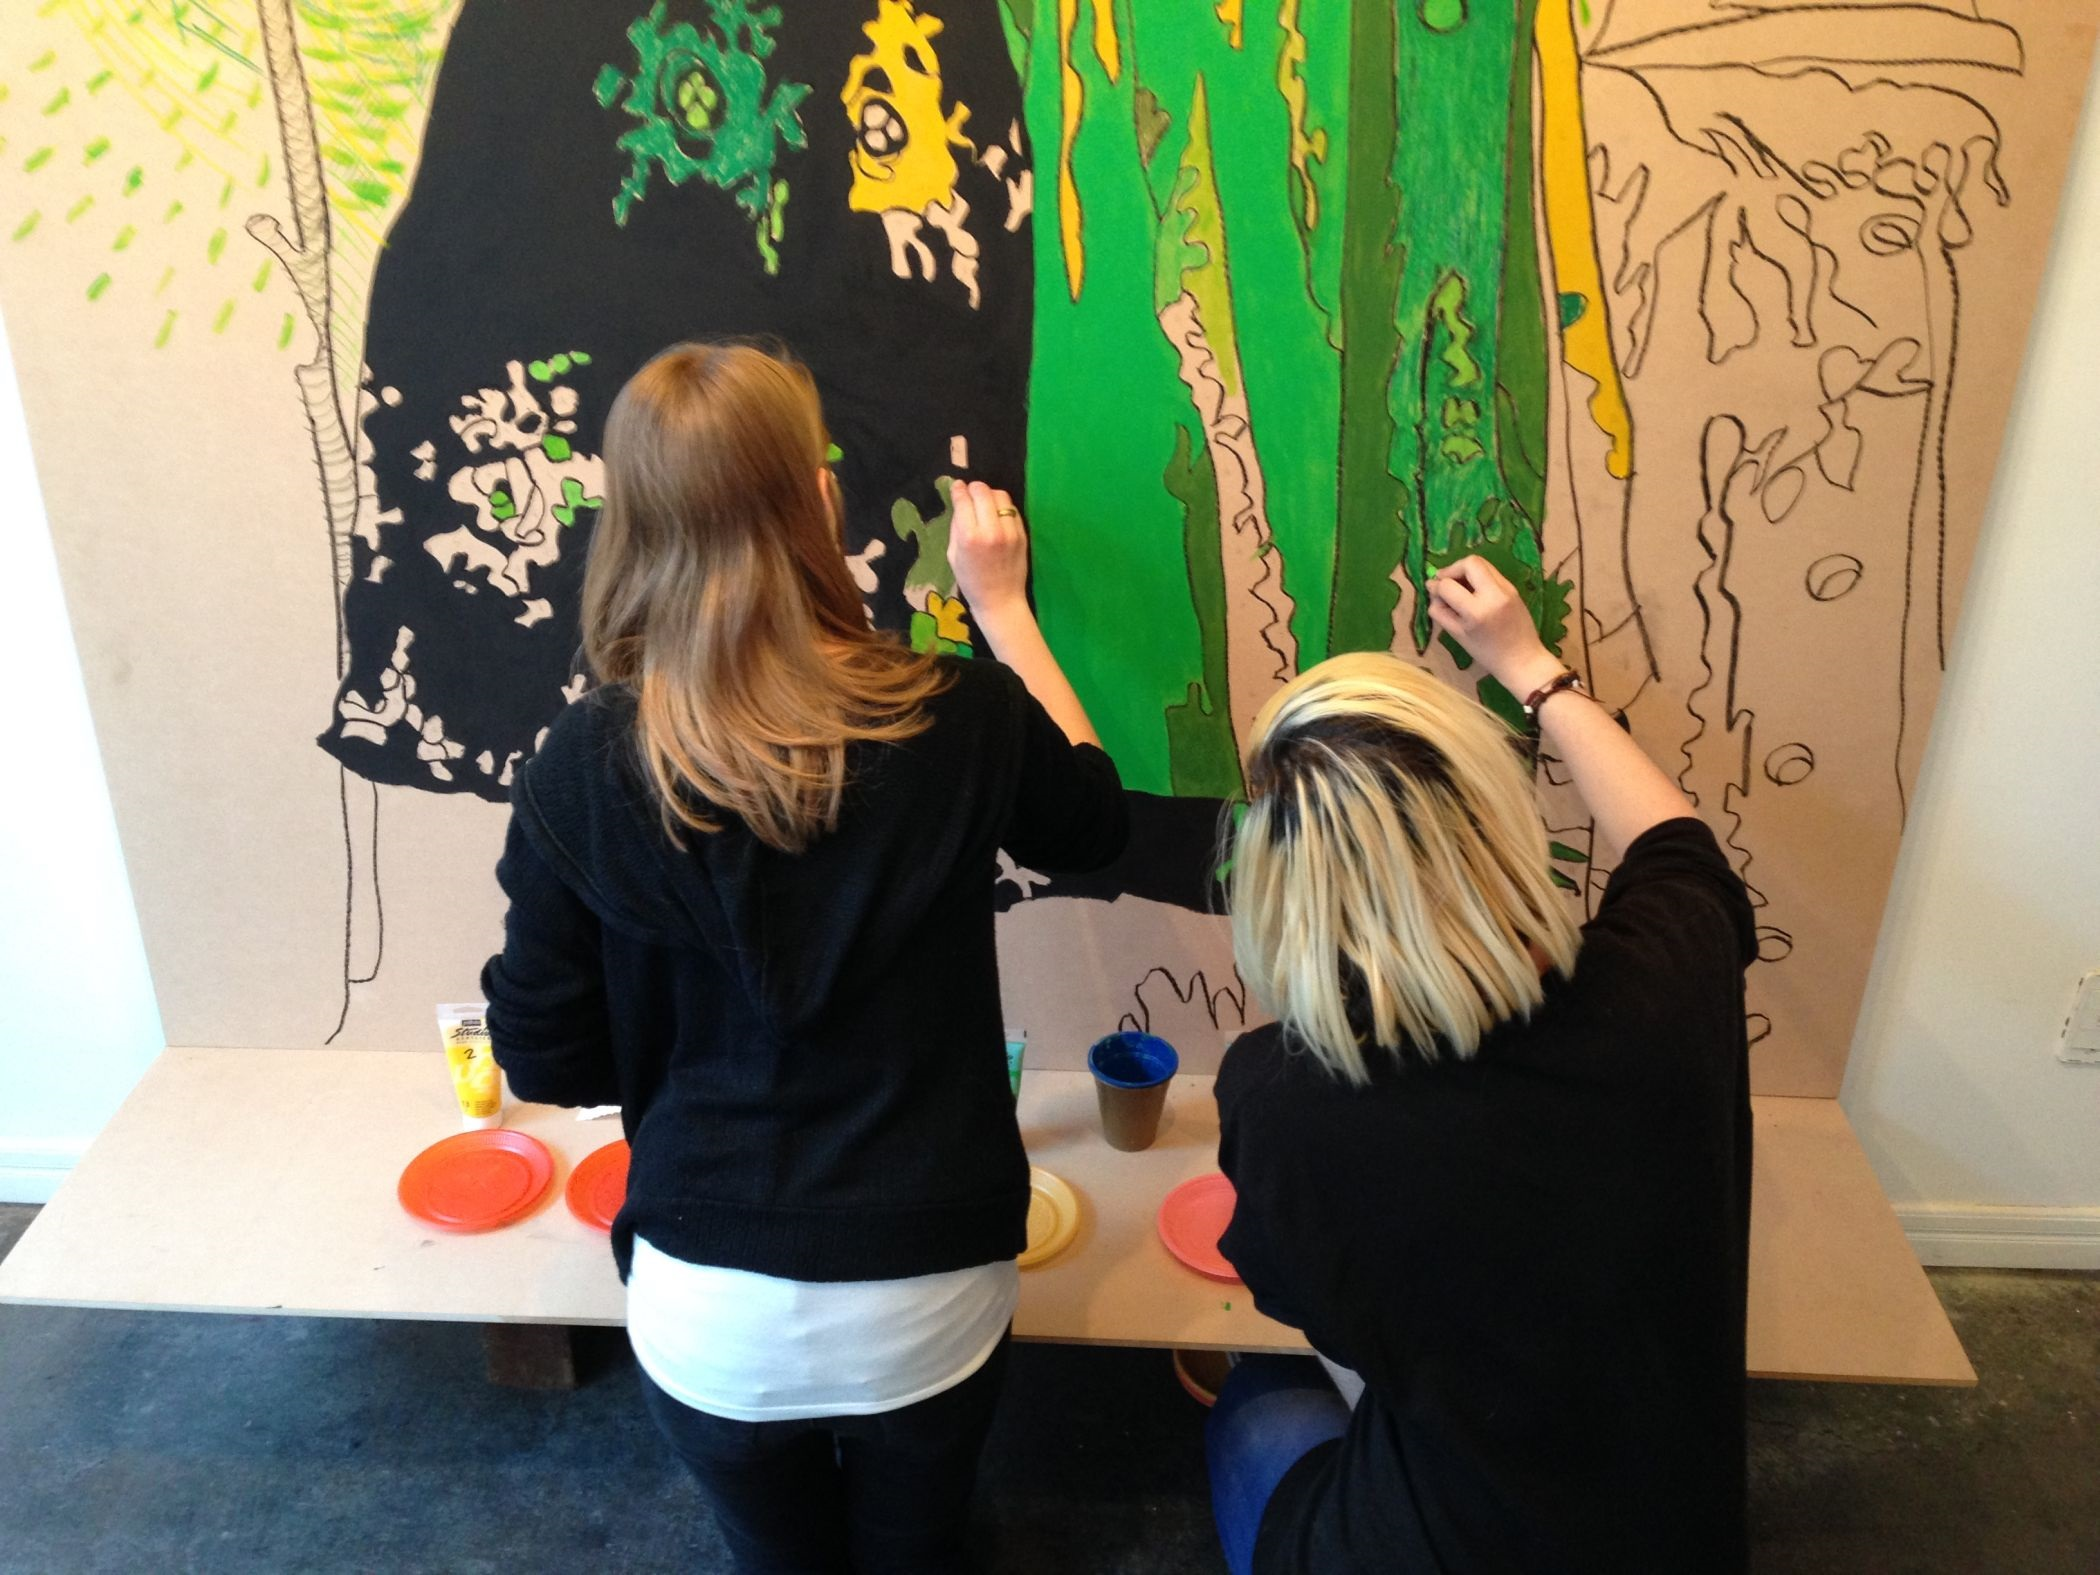 Luise and Lisa work on Biergarten, 2015, 5' x 7', mixed media, photo credit: Mary Jo Karimnia